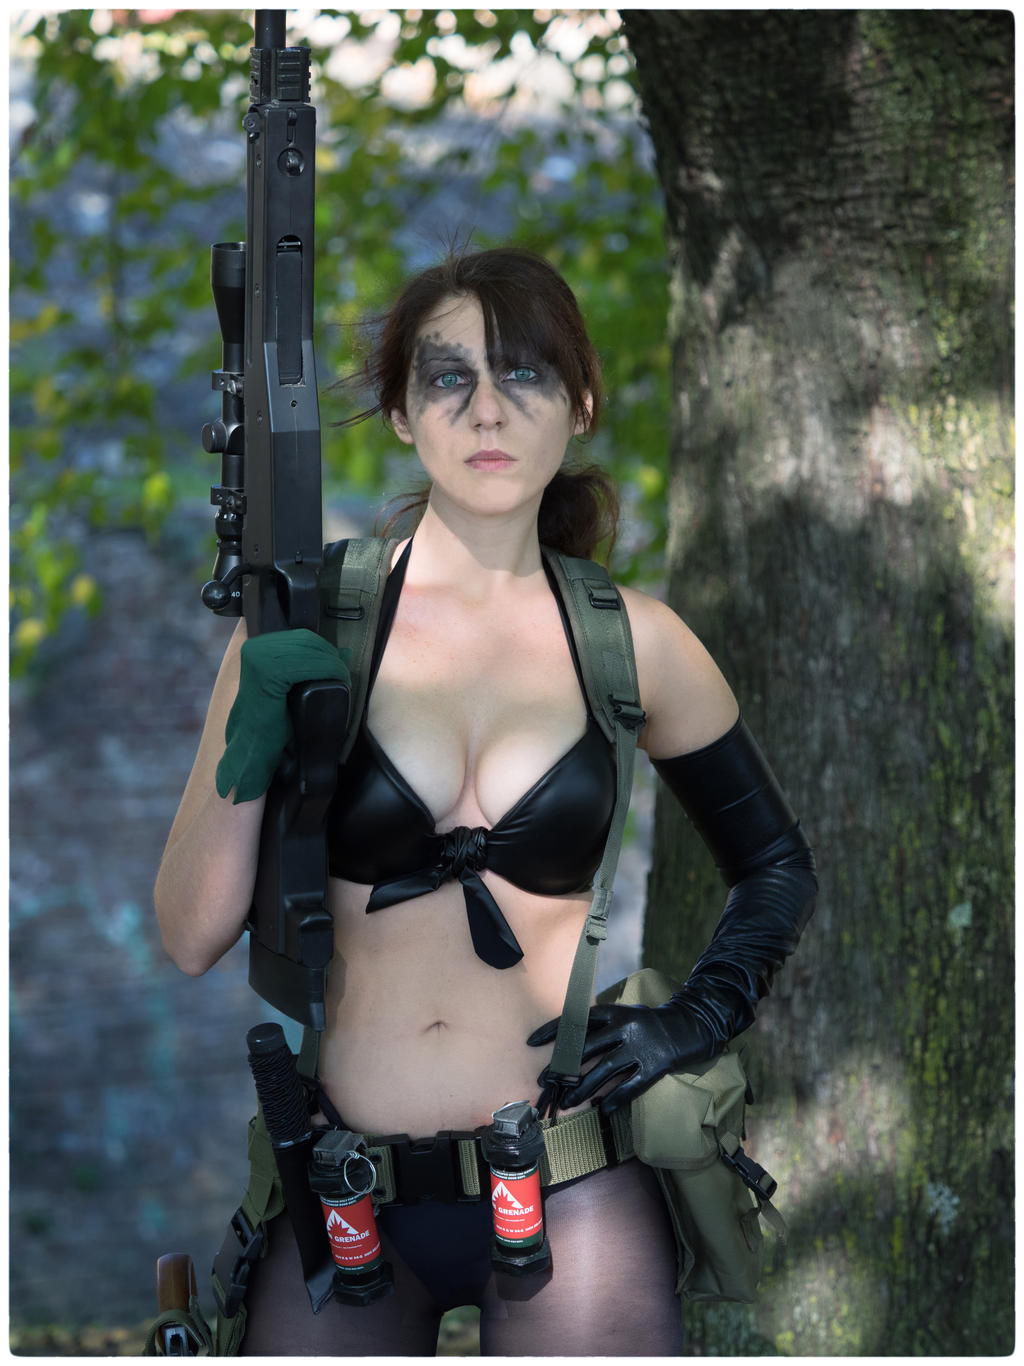 Quiet Cosplay - Metal Gear Solid V TPP by LadyDaniela89 on